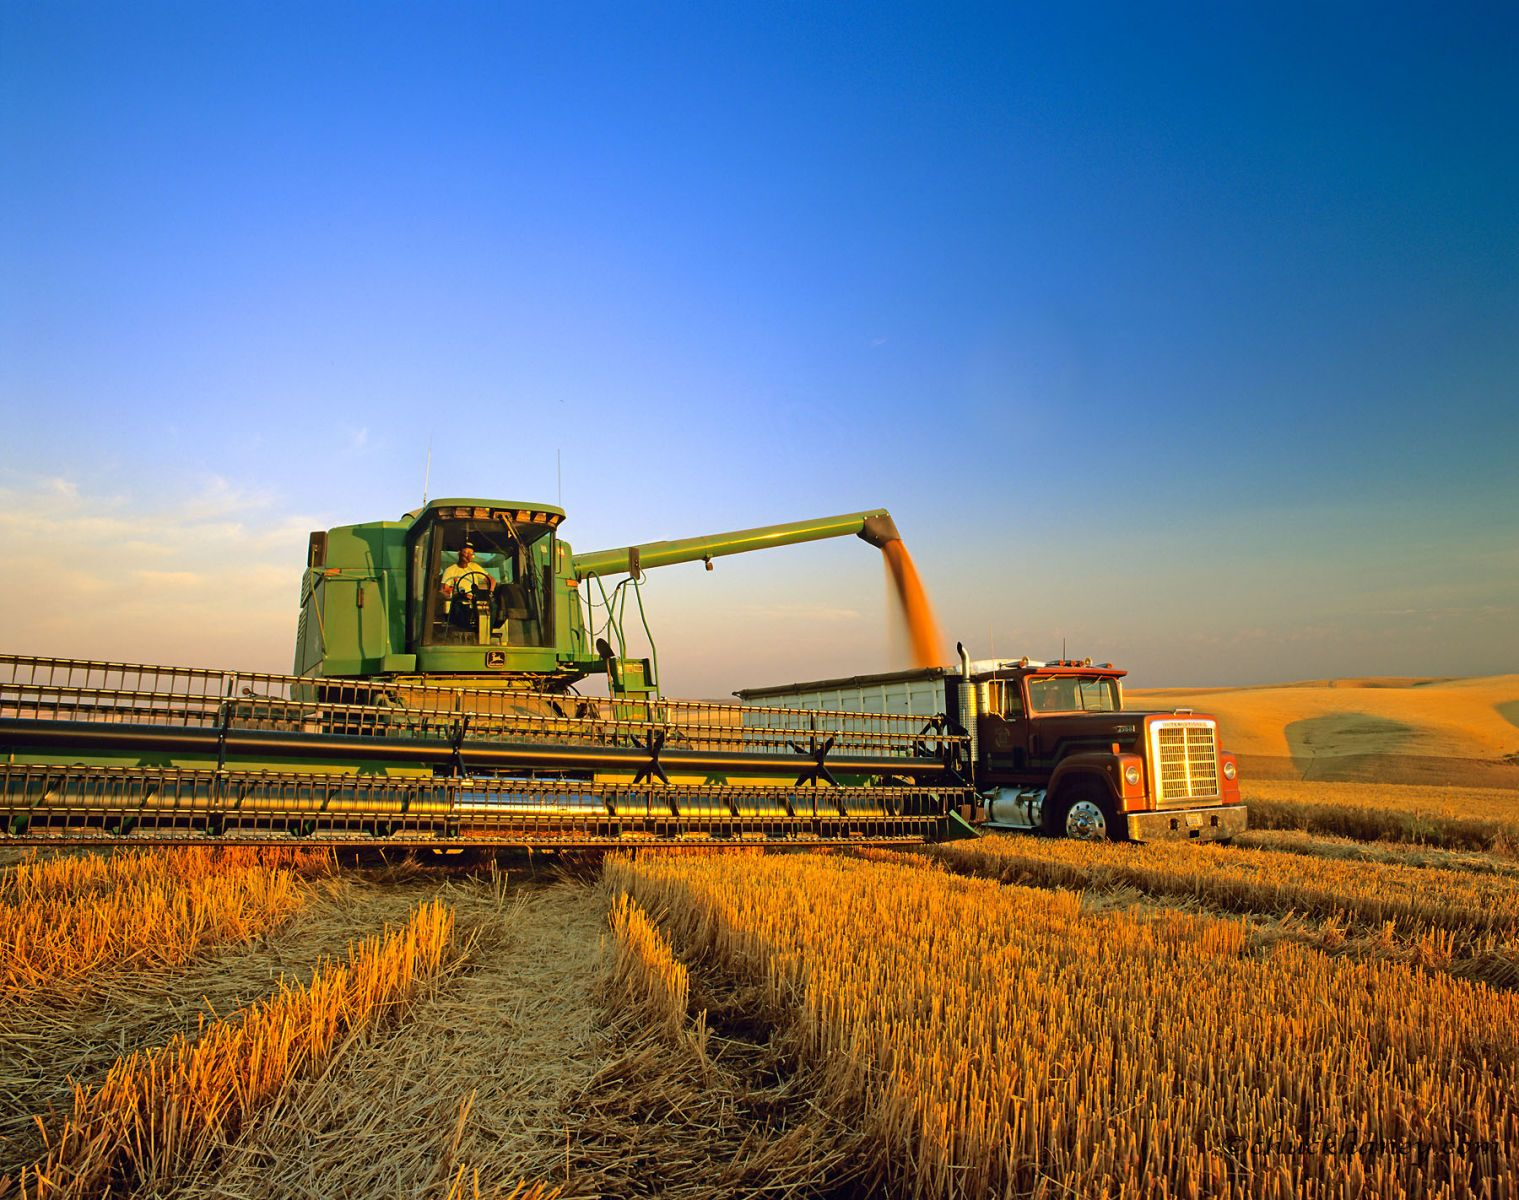 united grain grower case Proposals for increased (or, in the case of grading  tant grain crops grown in  the united states exceeds those  and the united grain growers own 743 out of.